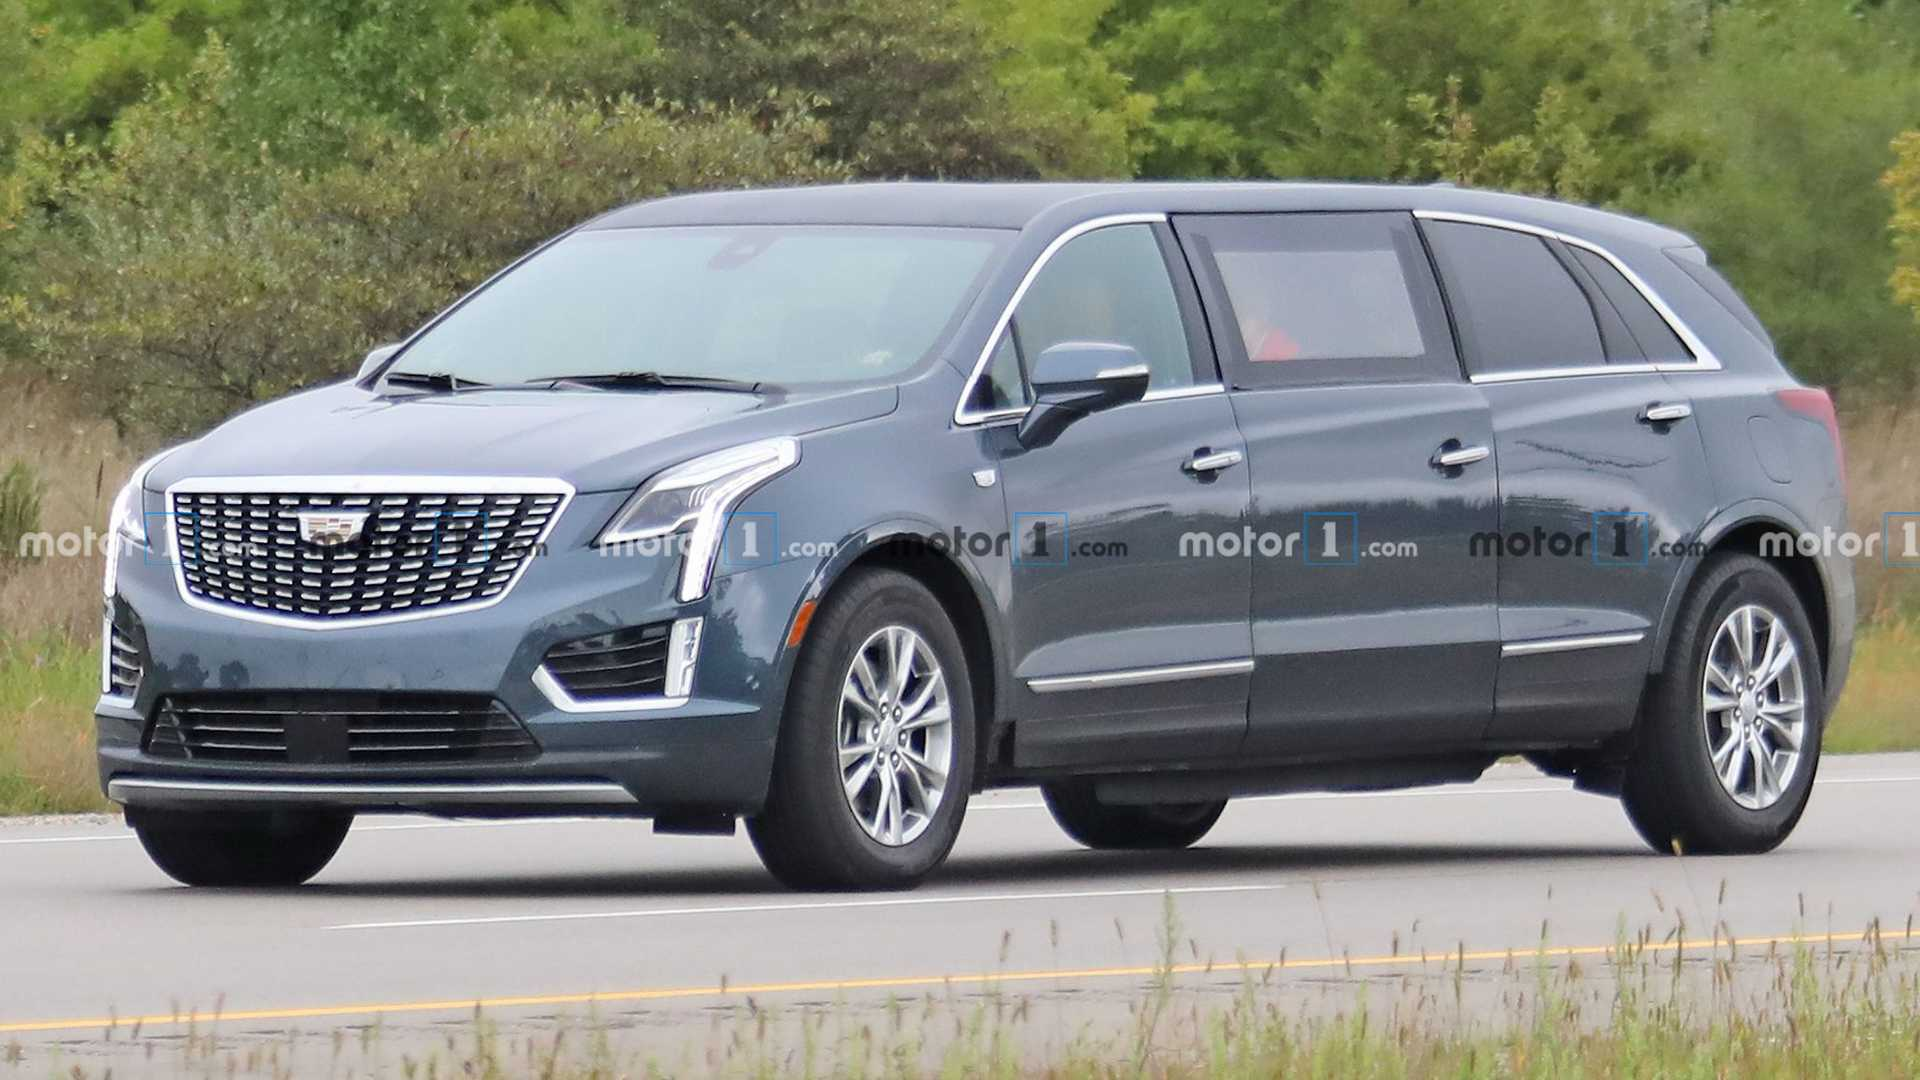 Spy Shots Cadillac Xt5 Redesign and Concept